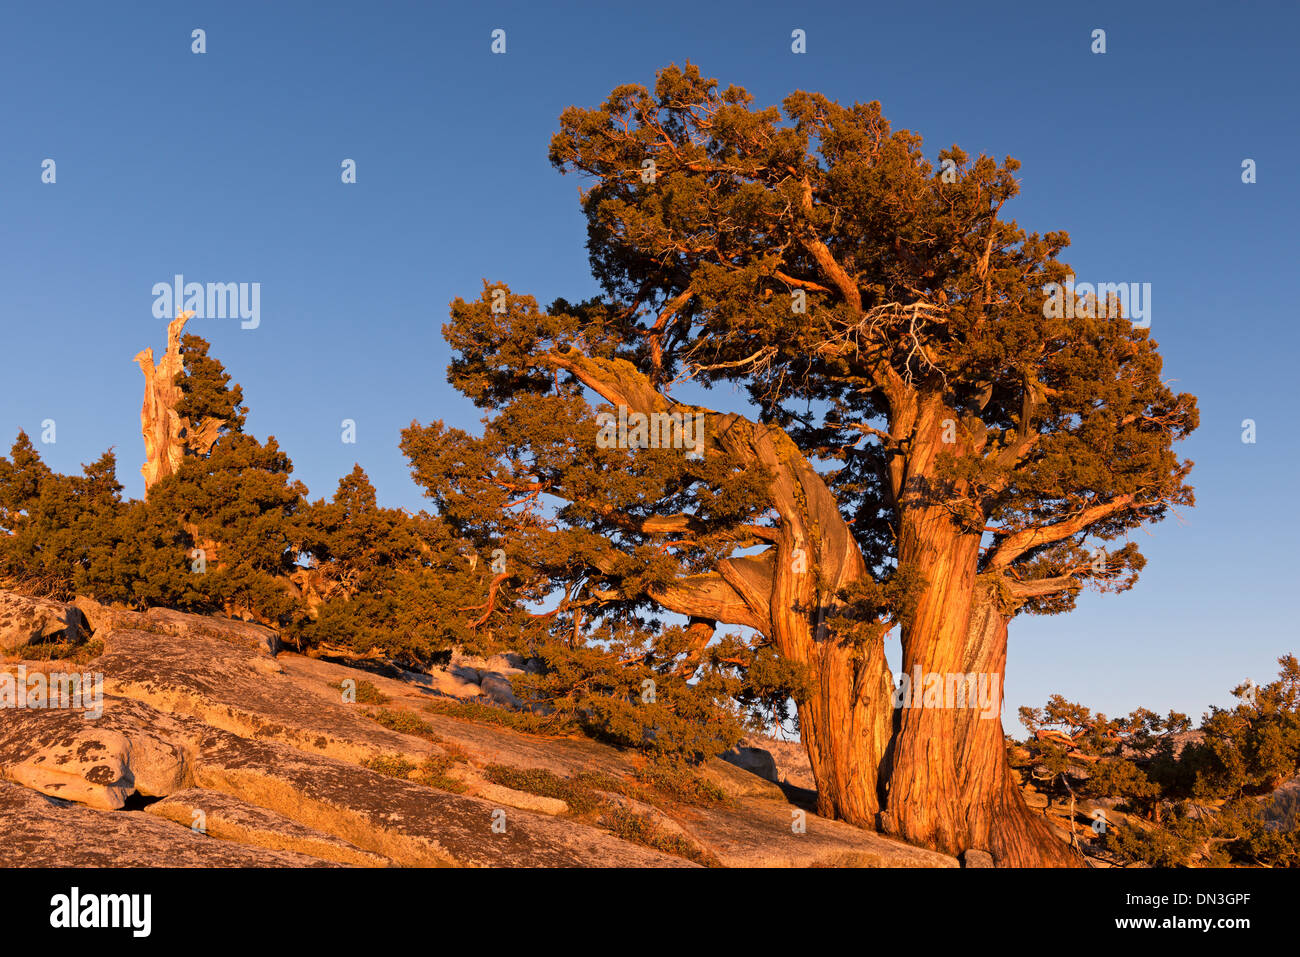 Ancient pine tree growing on the mountains above Olmstead Point, Yosemite, California, USA. Autumn (October) 2013. - Stock Image